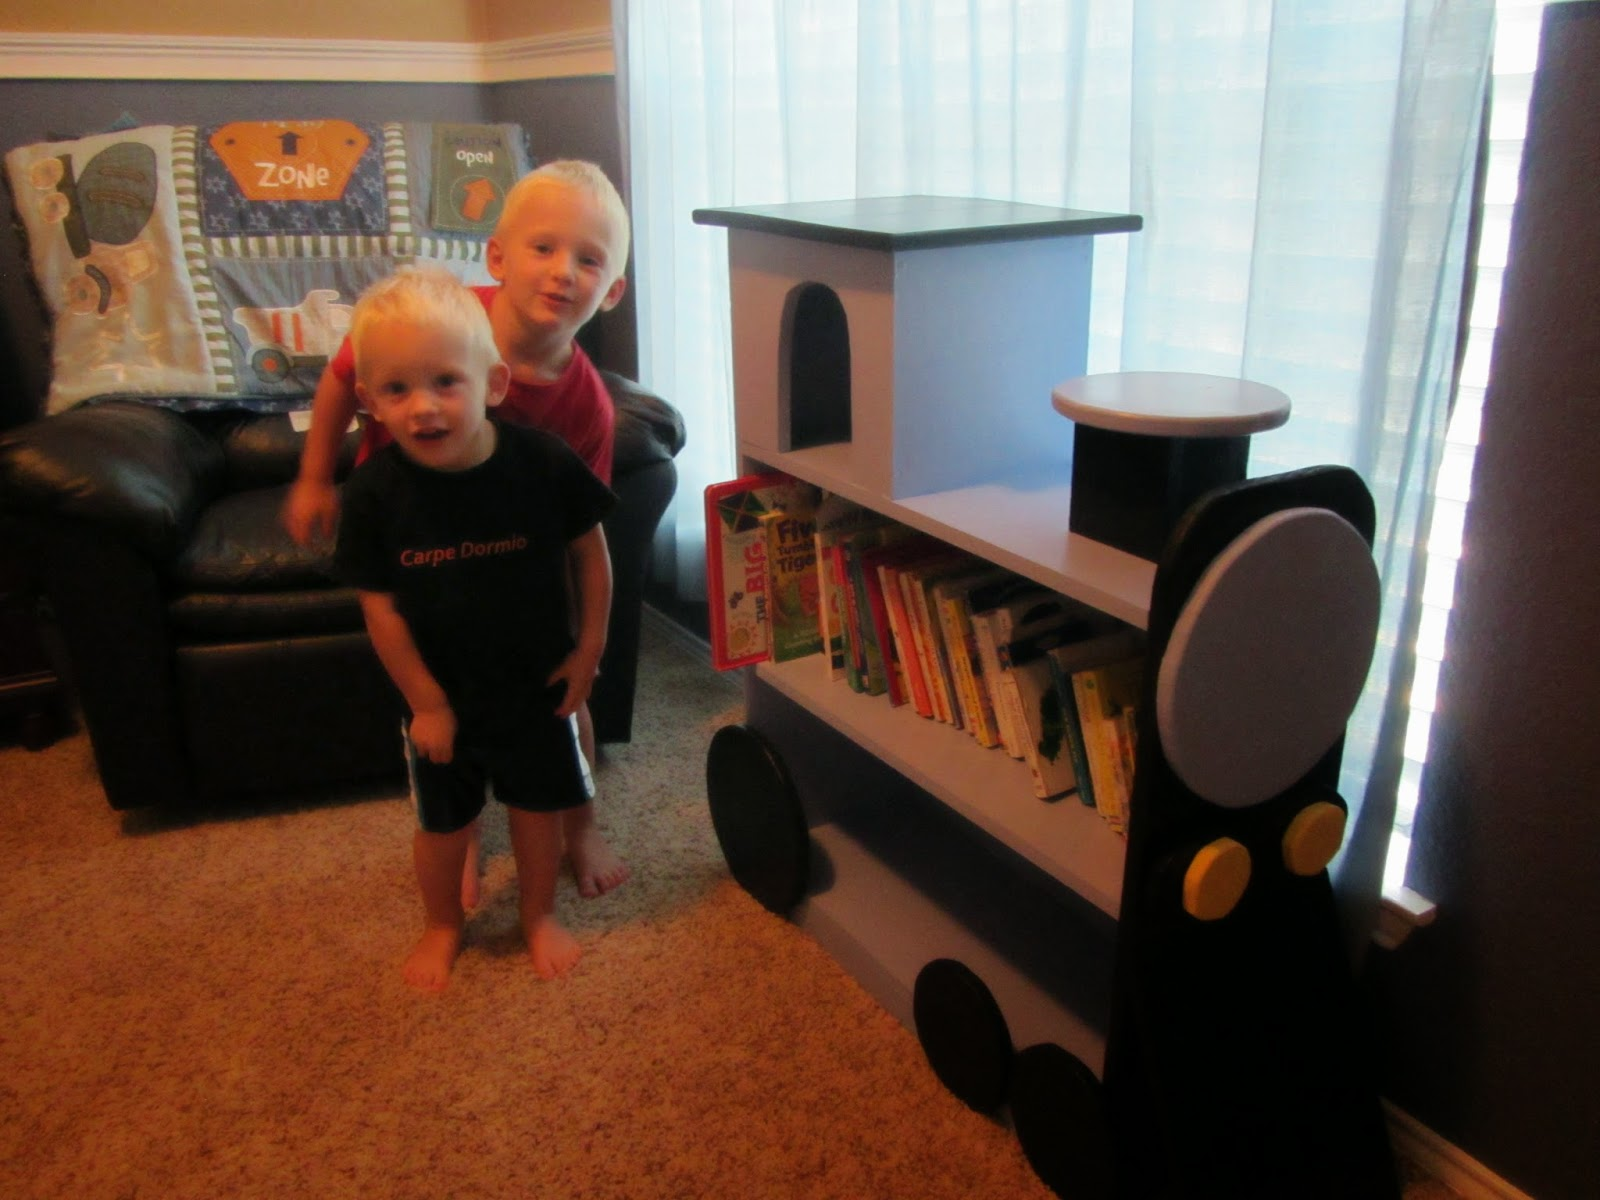 I Told Autrey Wanted A Plain Bookshelf To Replace One That Was Too Small And Falling Apart So He Made Train The Boys LOVE